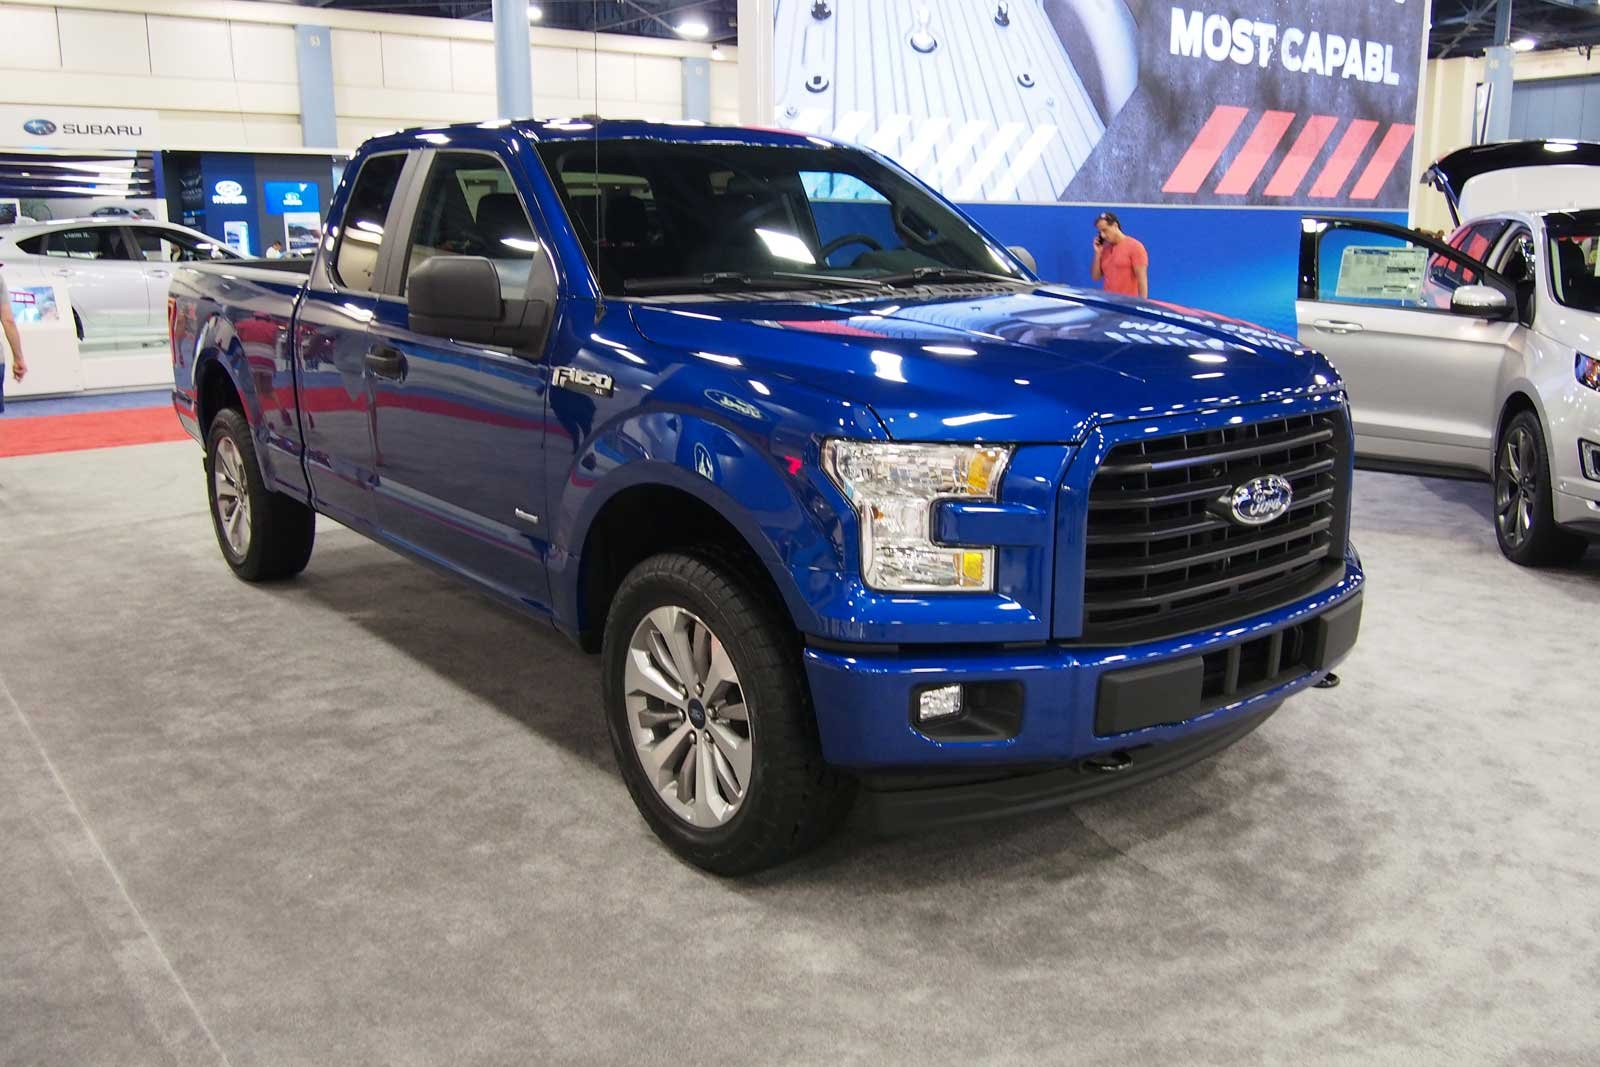 Ford F 150 Body Styles >> Ford Brings Back the STX Appearance Pack for F-Series Trucks - AllFordMustangs